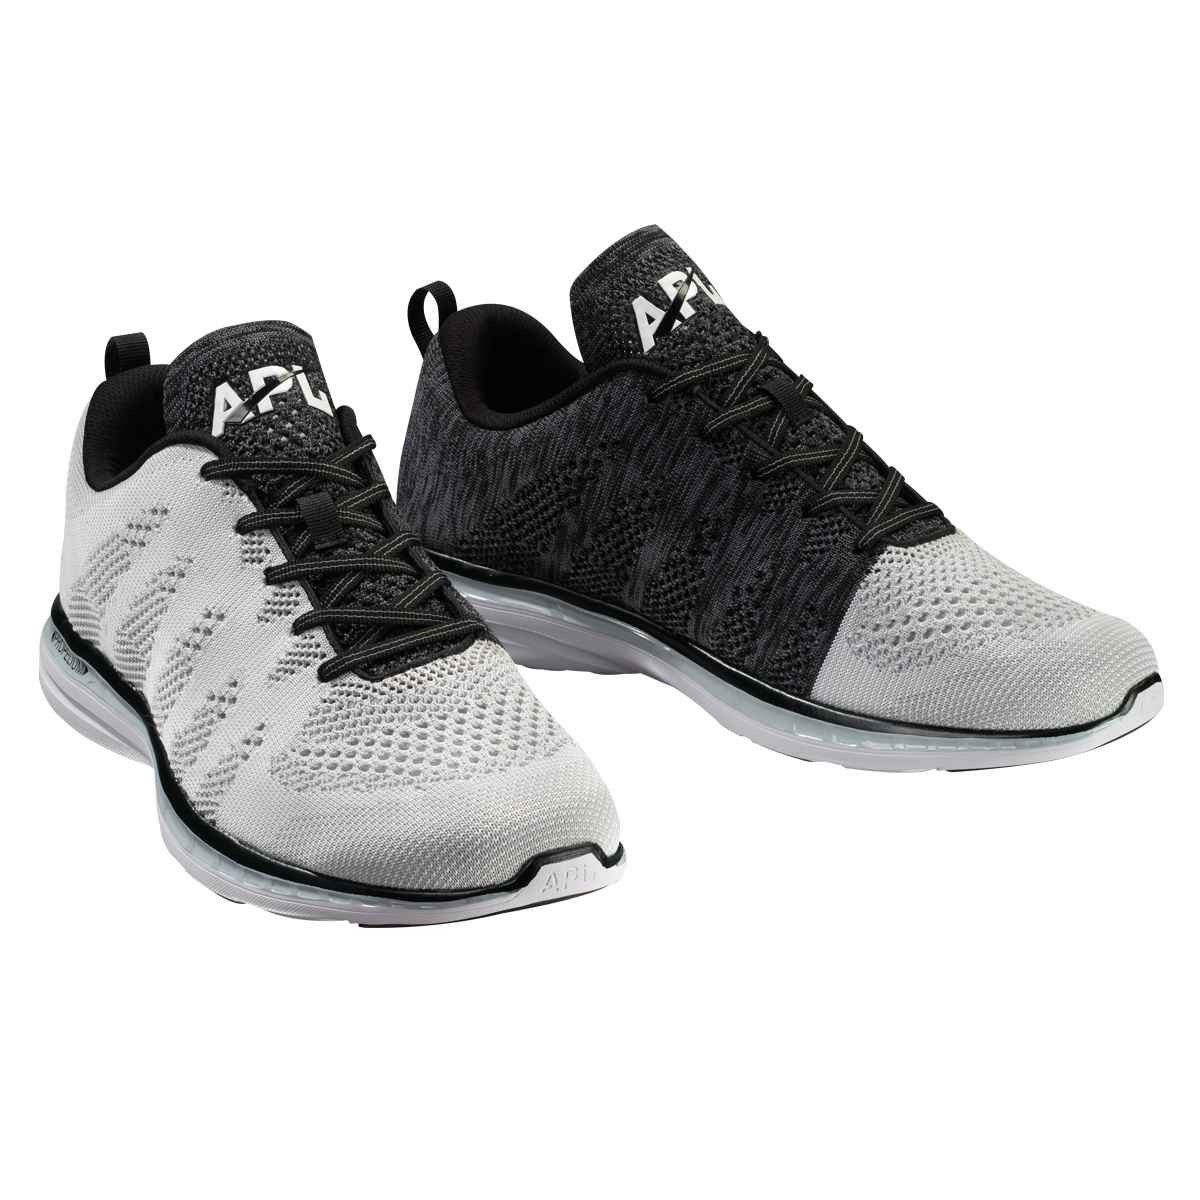 Apl shoes, Apl running shoes, Running